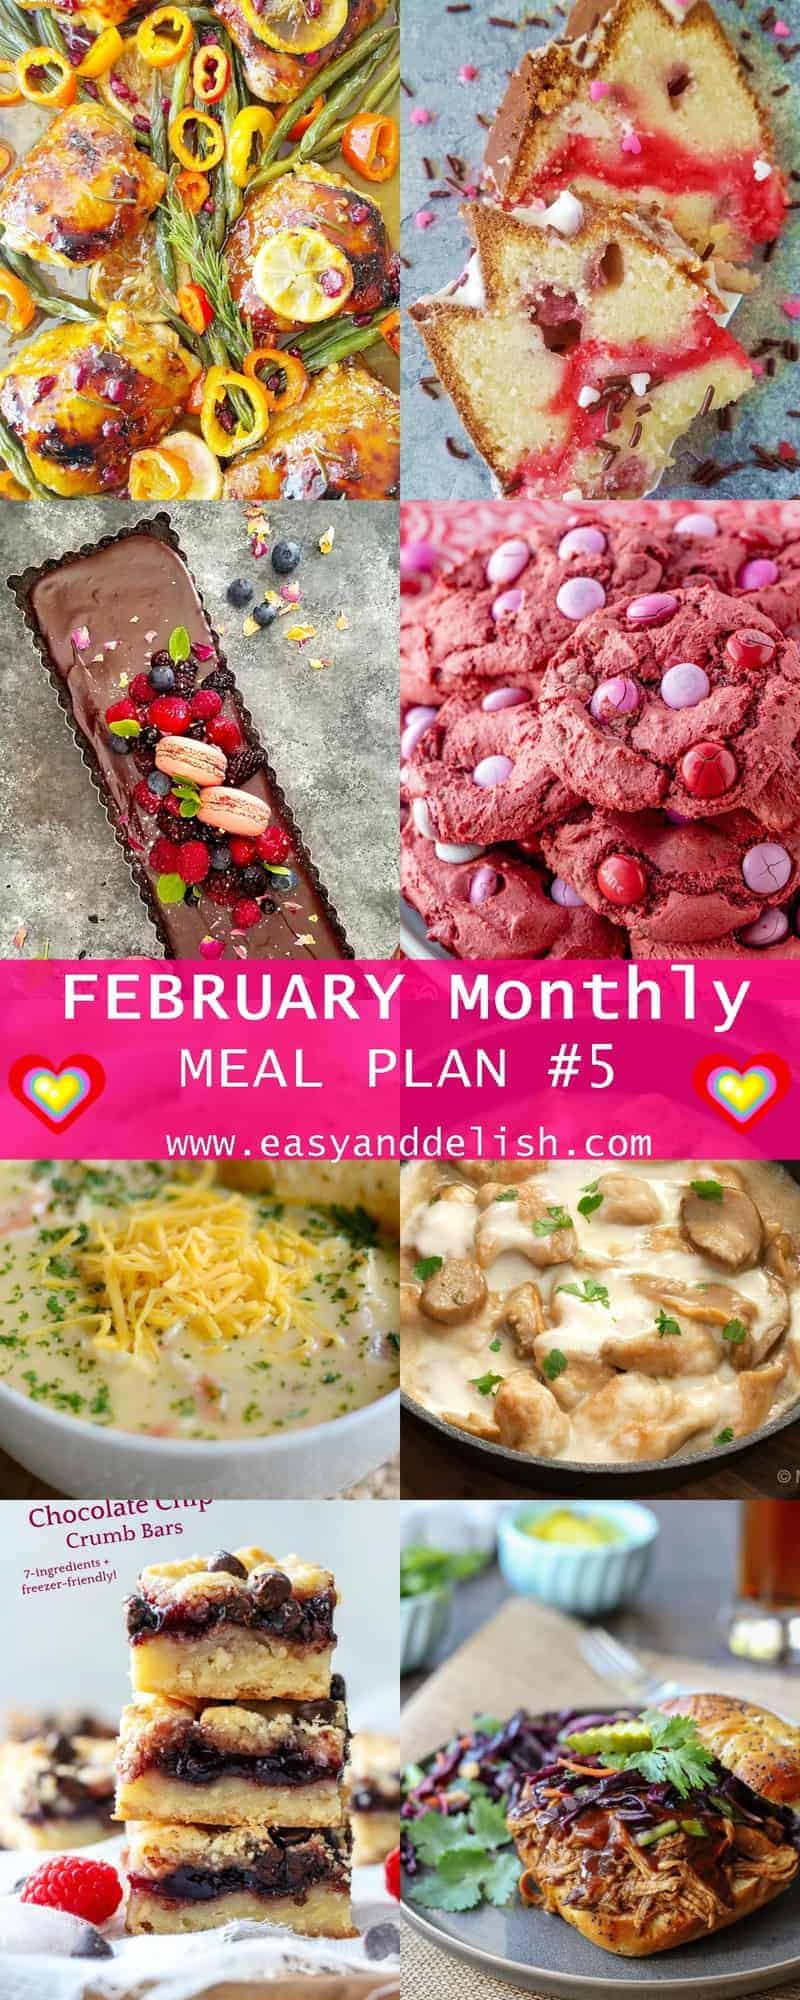 Image showing 8 different dishes from the February Monthly Meal Plan